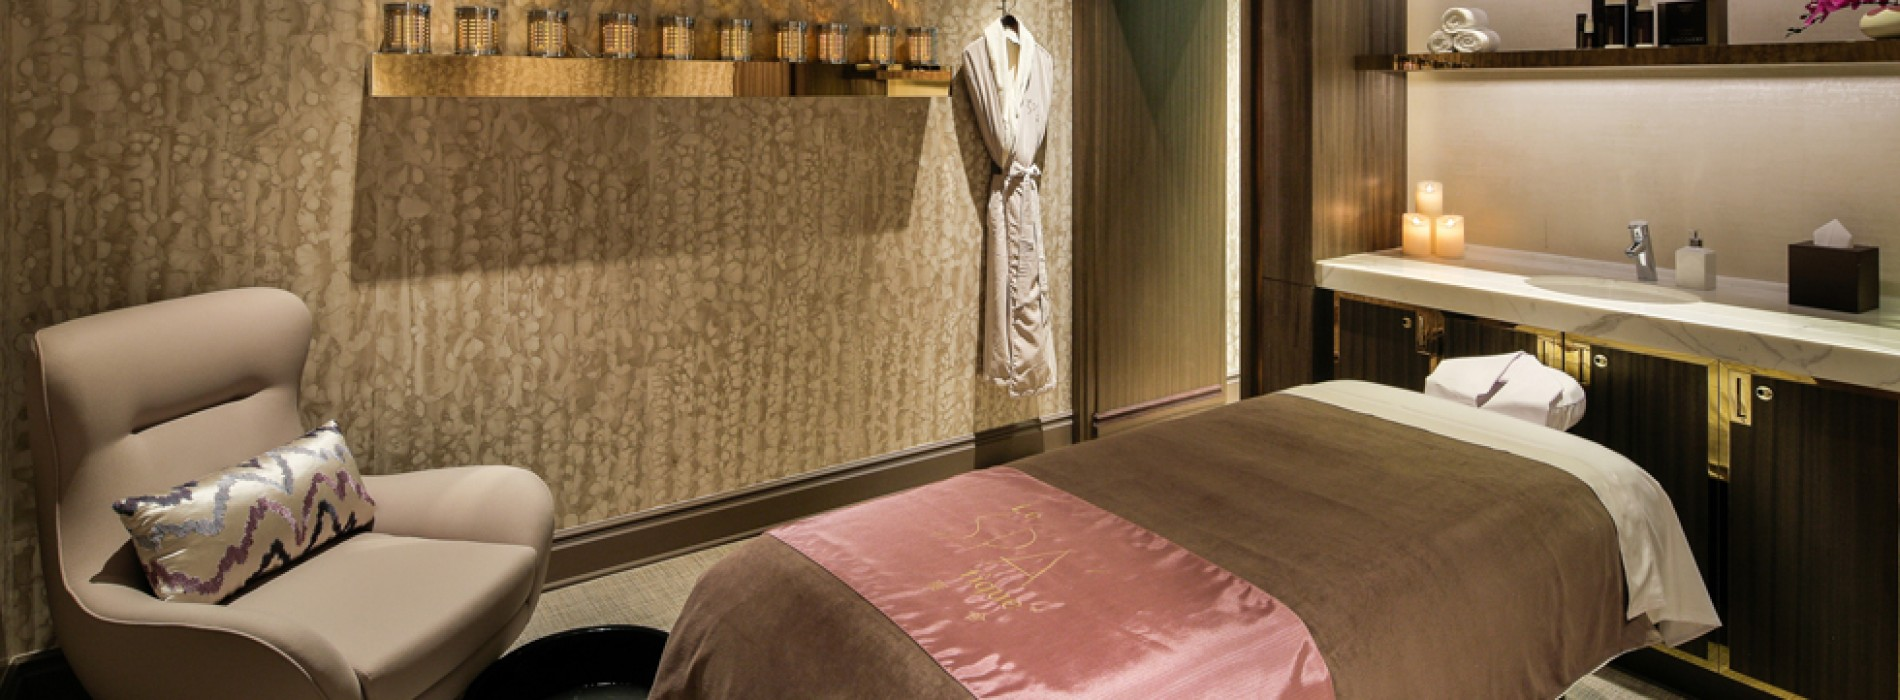 Le SPA'tique at The Parisian Macao Wins 'Luxury Emerging Spa – China' at 2017 World Luxury Spa Awards